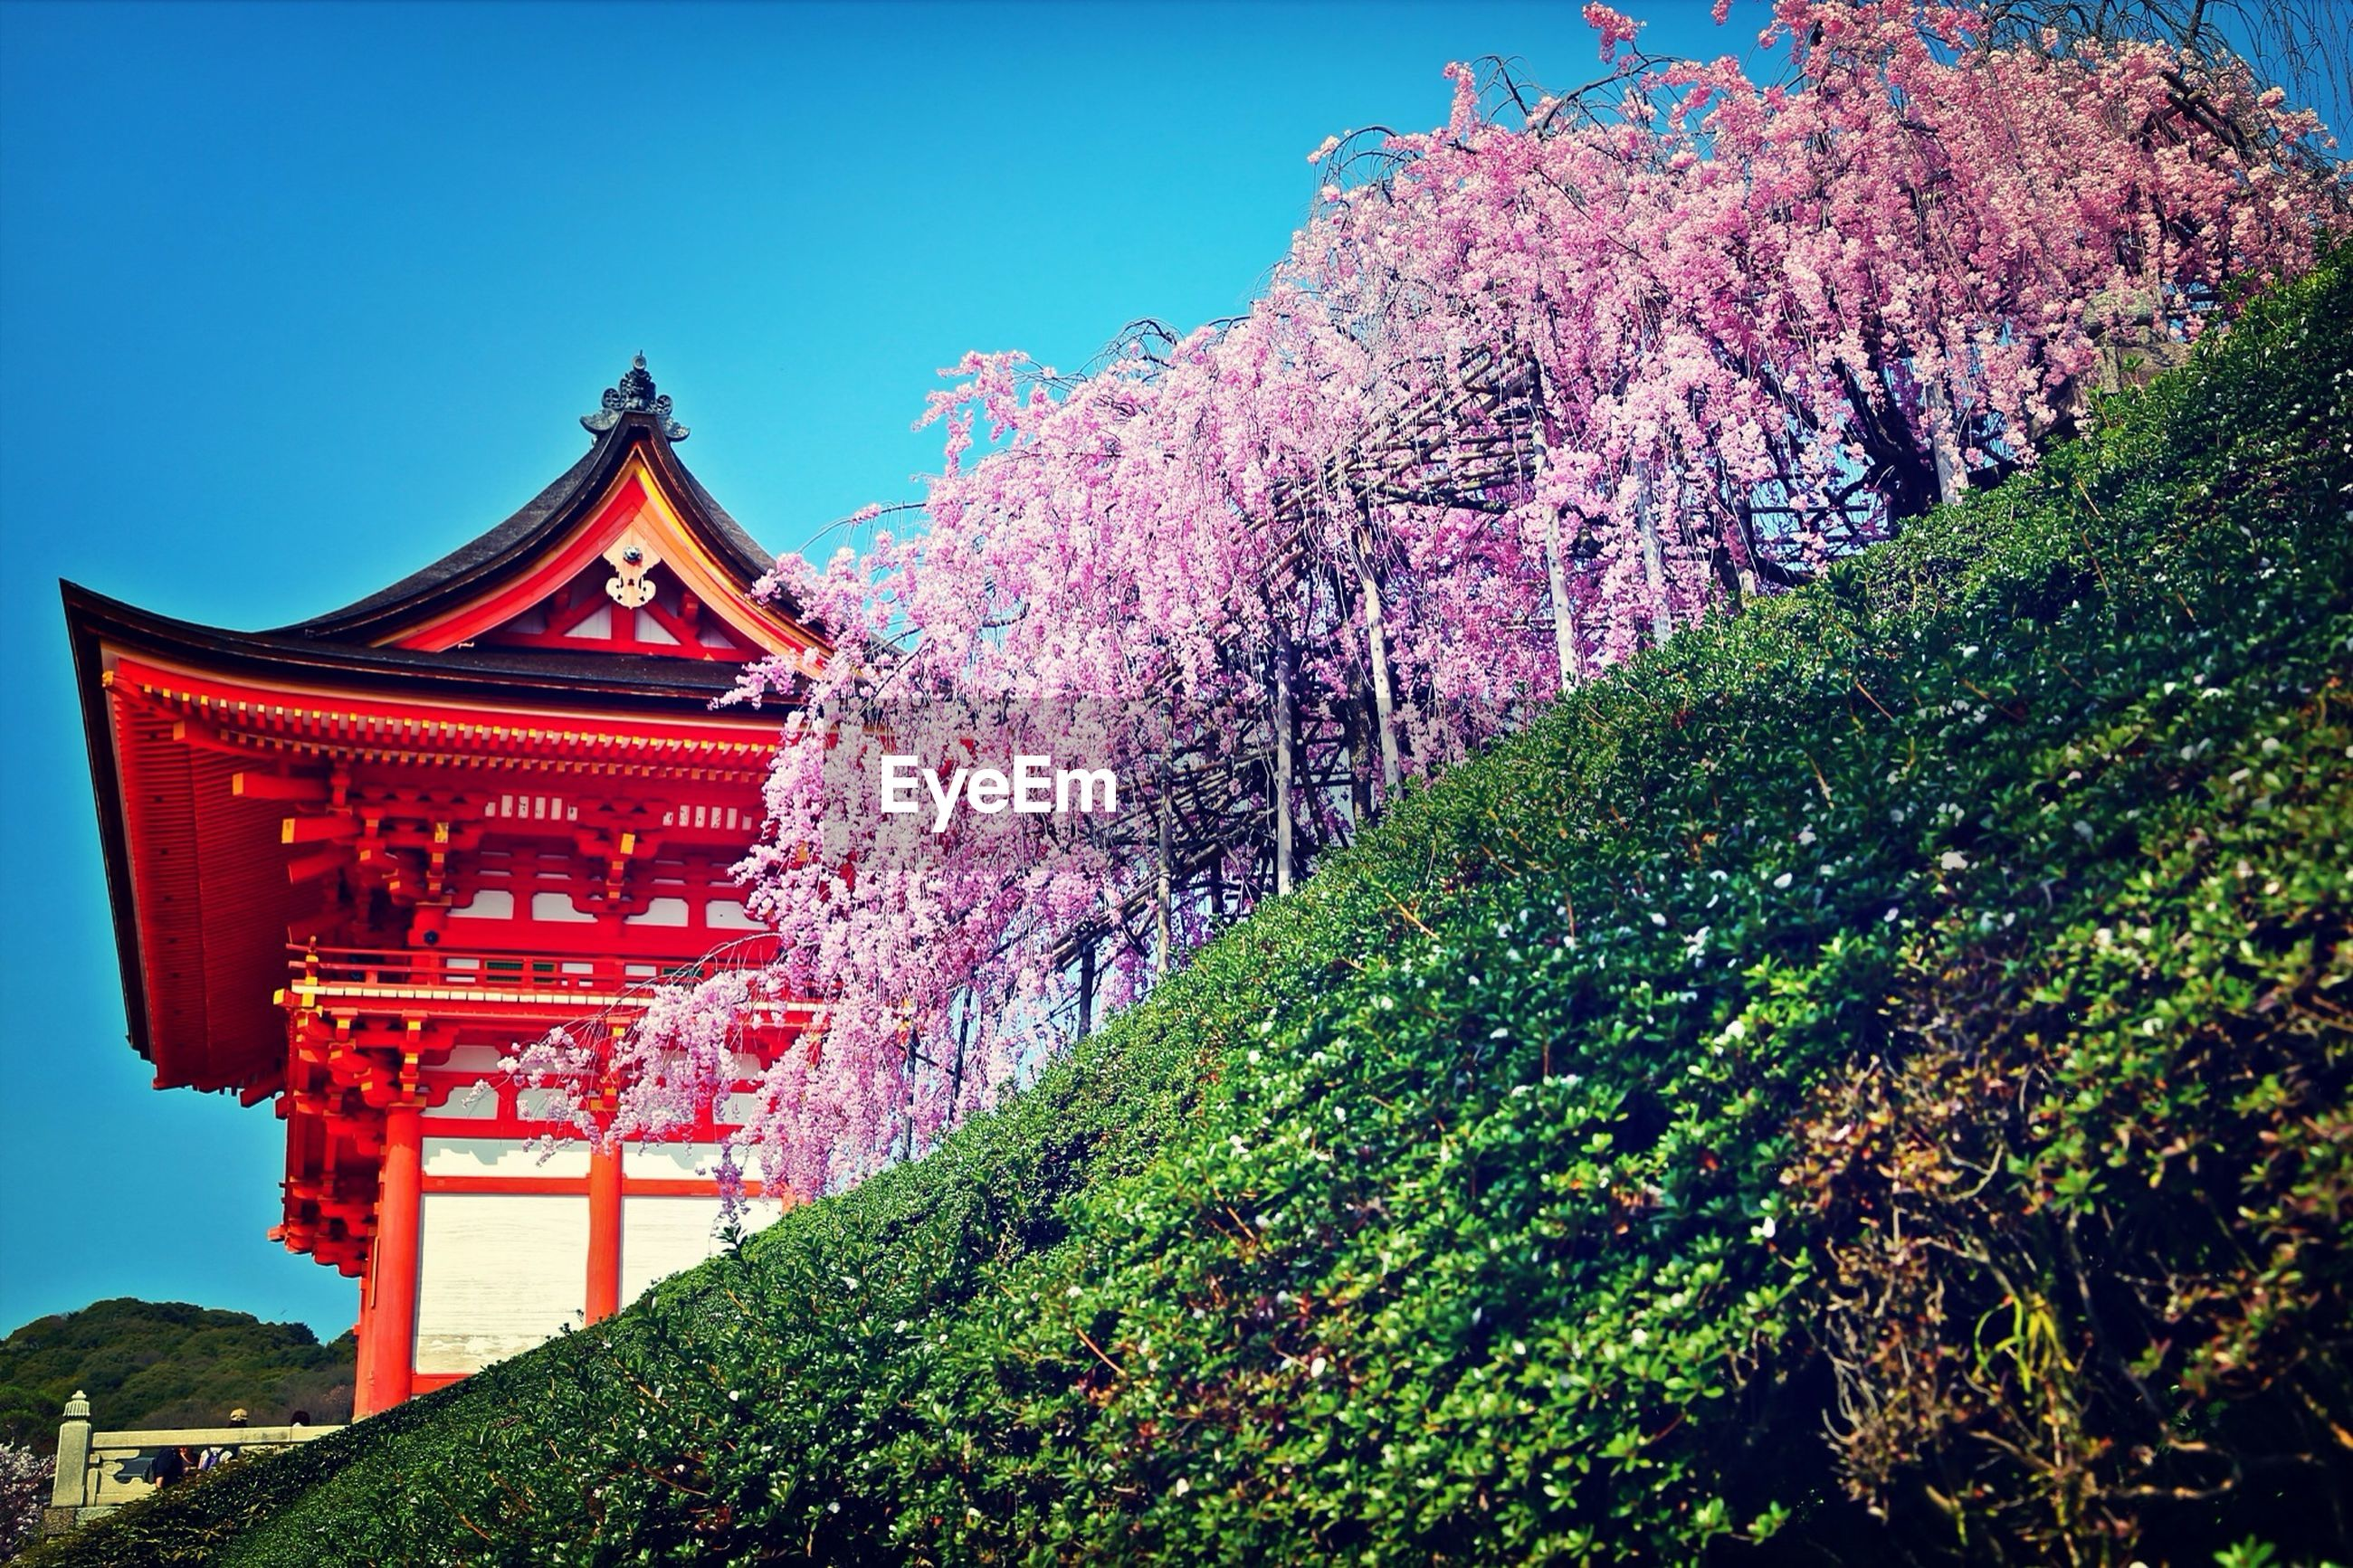 tree, no people, outdoors, day, beauty in nature, growth, low angle view, nature, red, blossom, architecture, flower, freshness, sky, building exterior, clear sky, branch, fragility